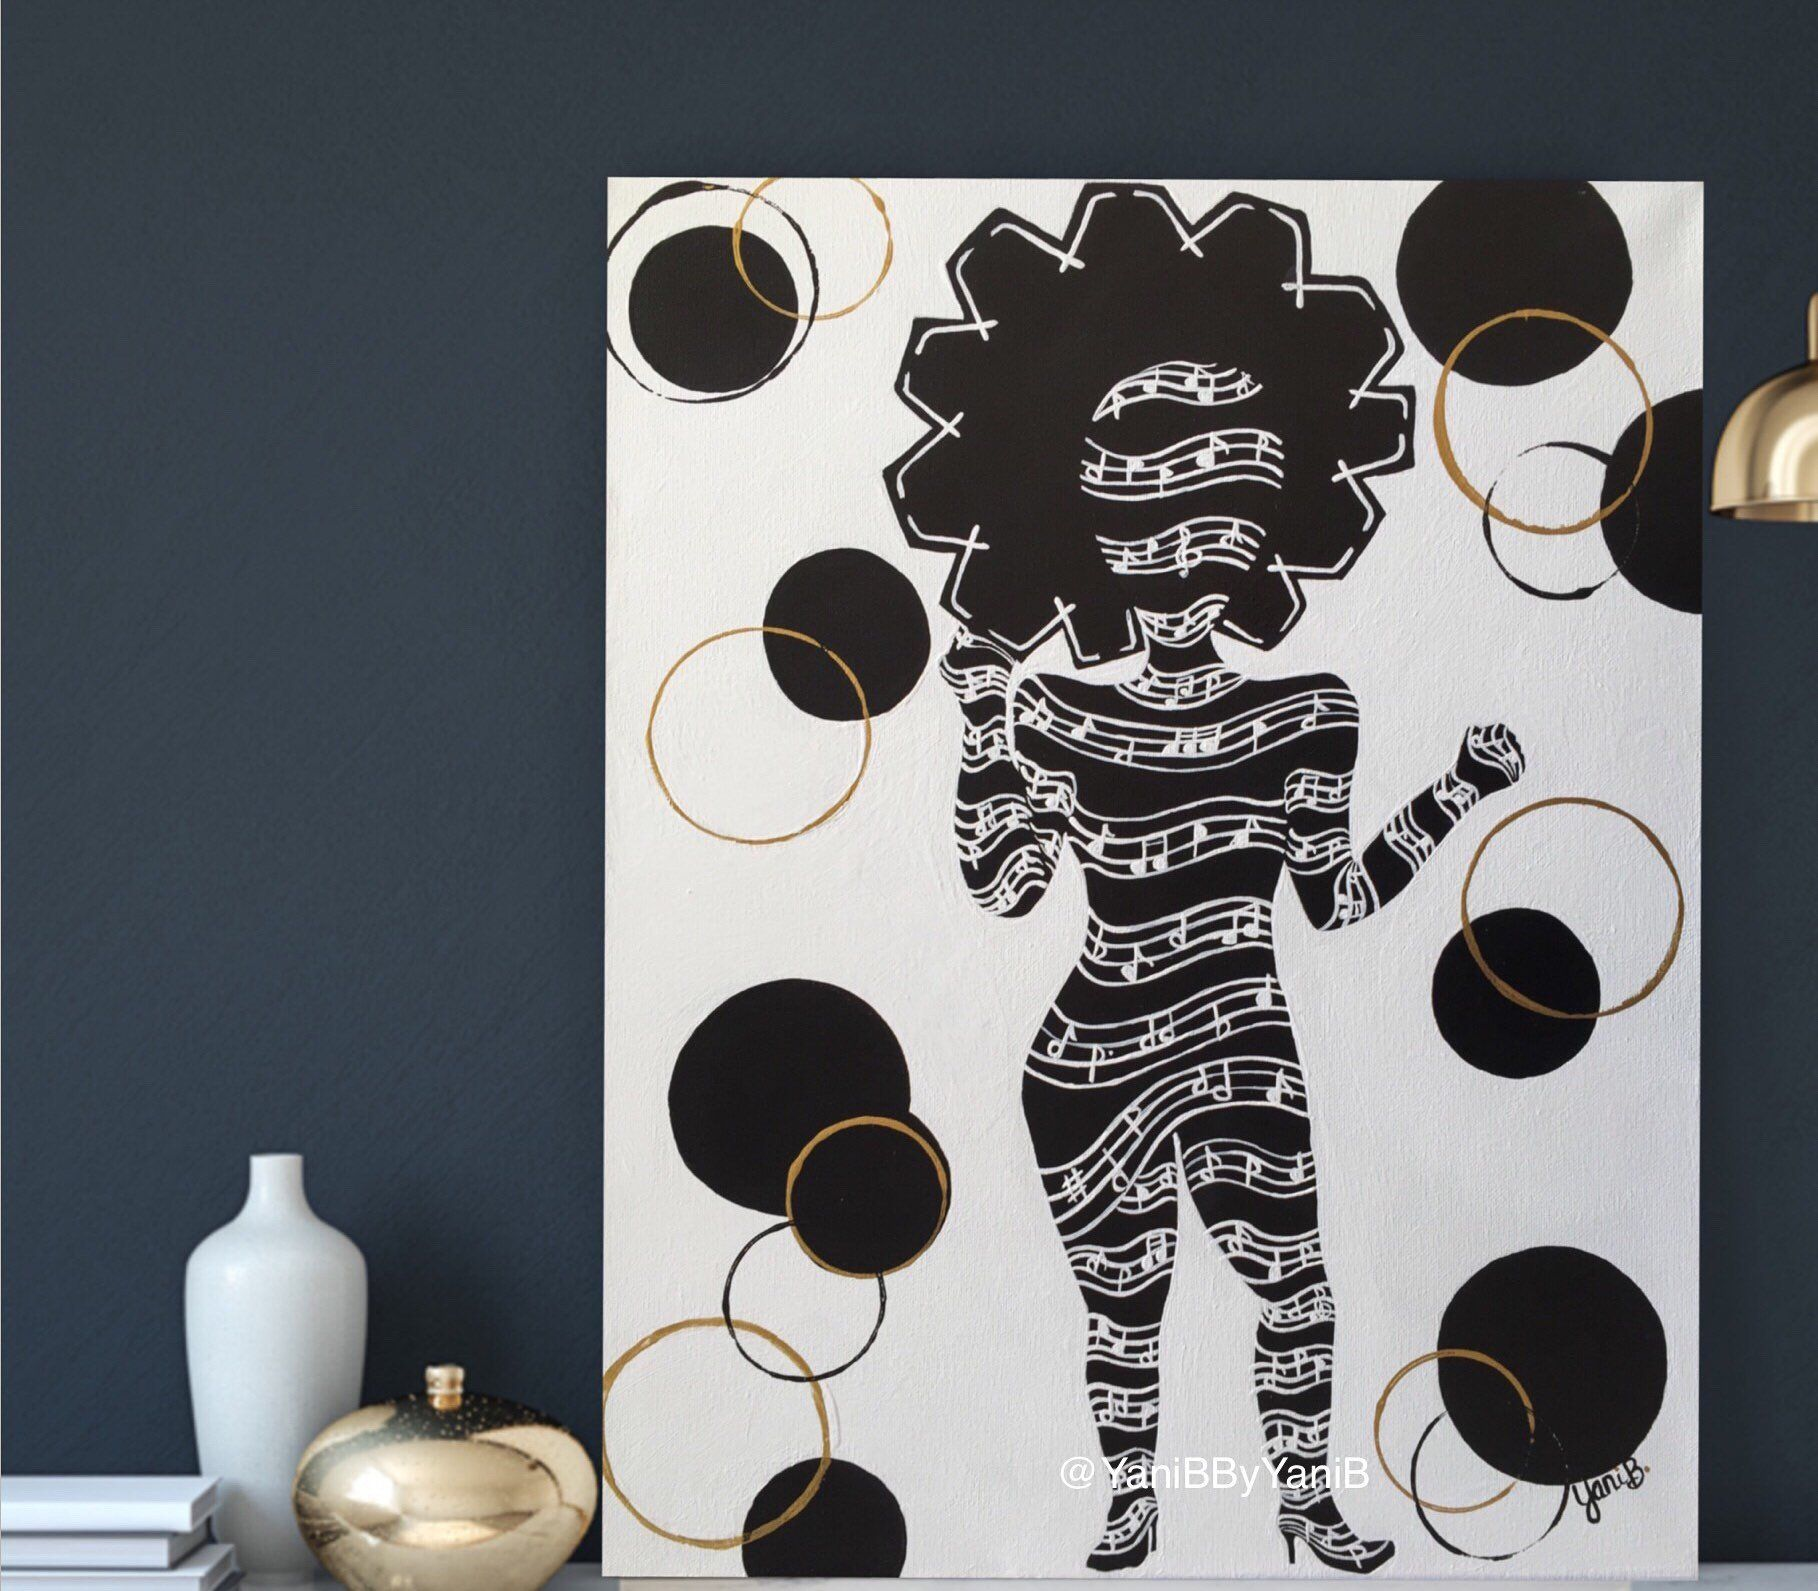 Original African American Wall Art Black And White Acrylic